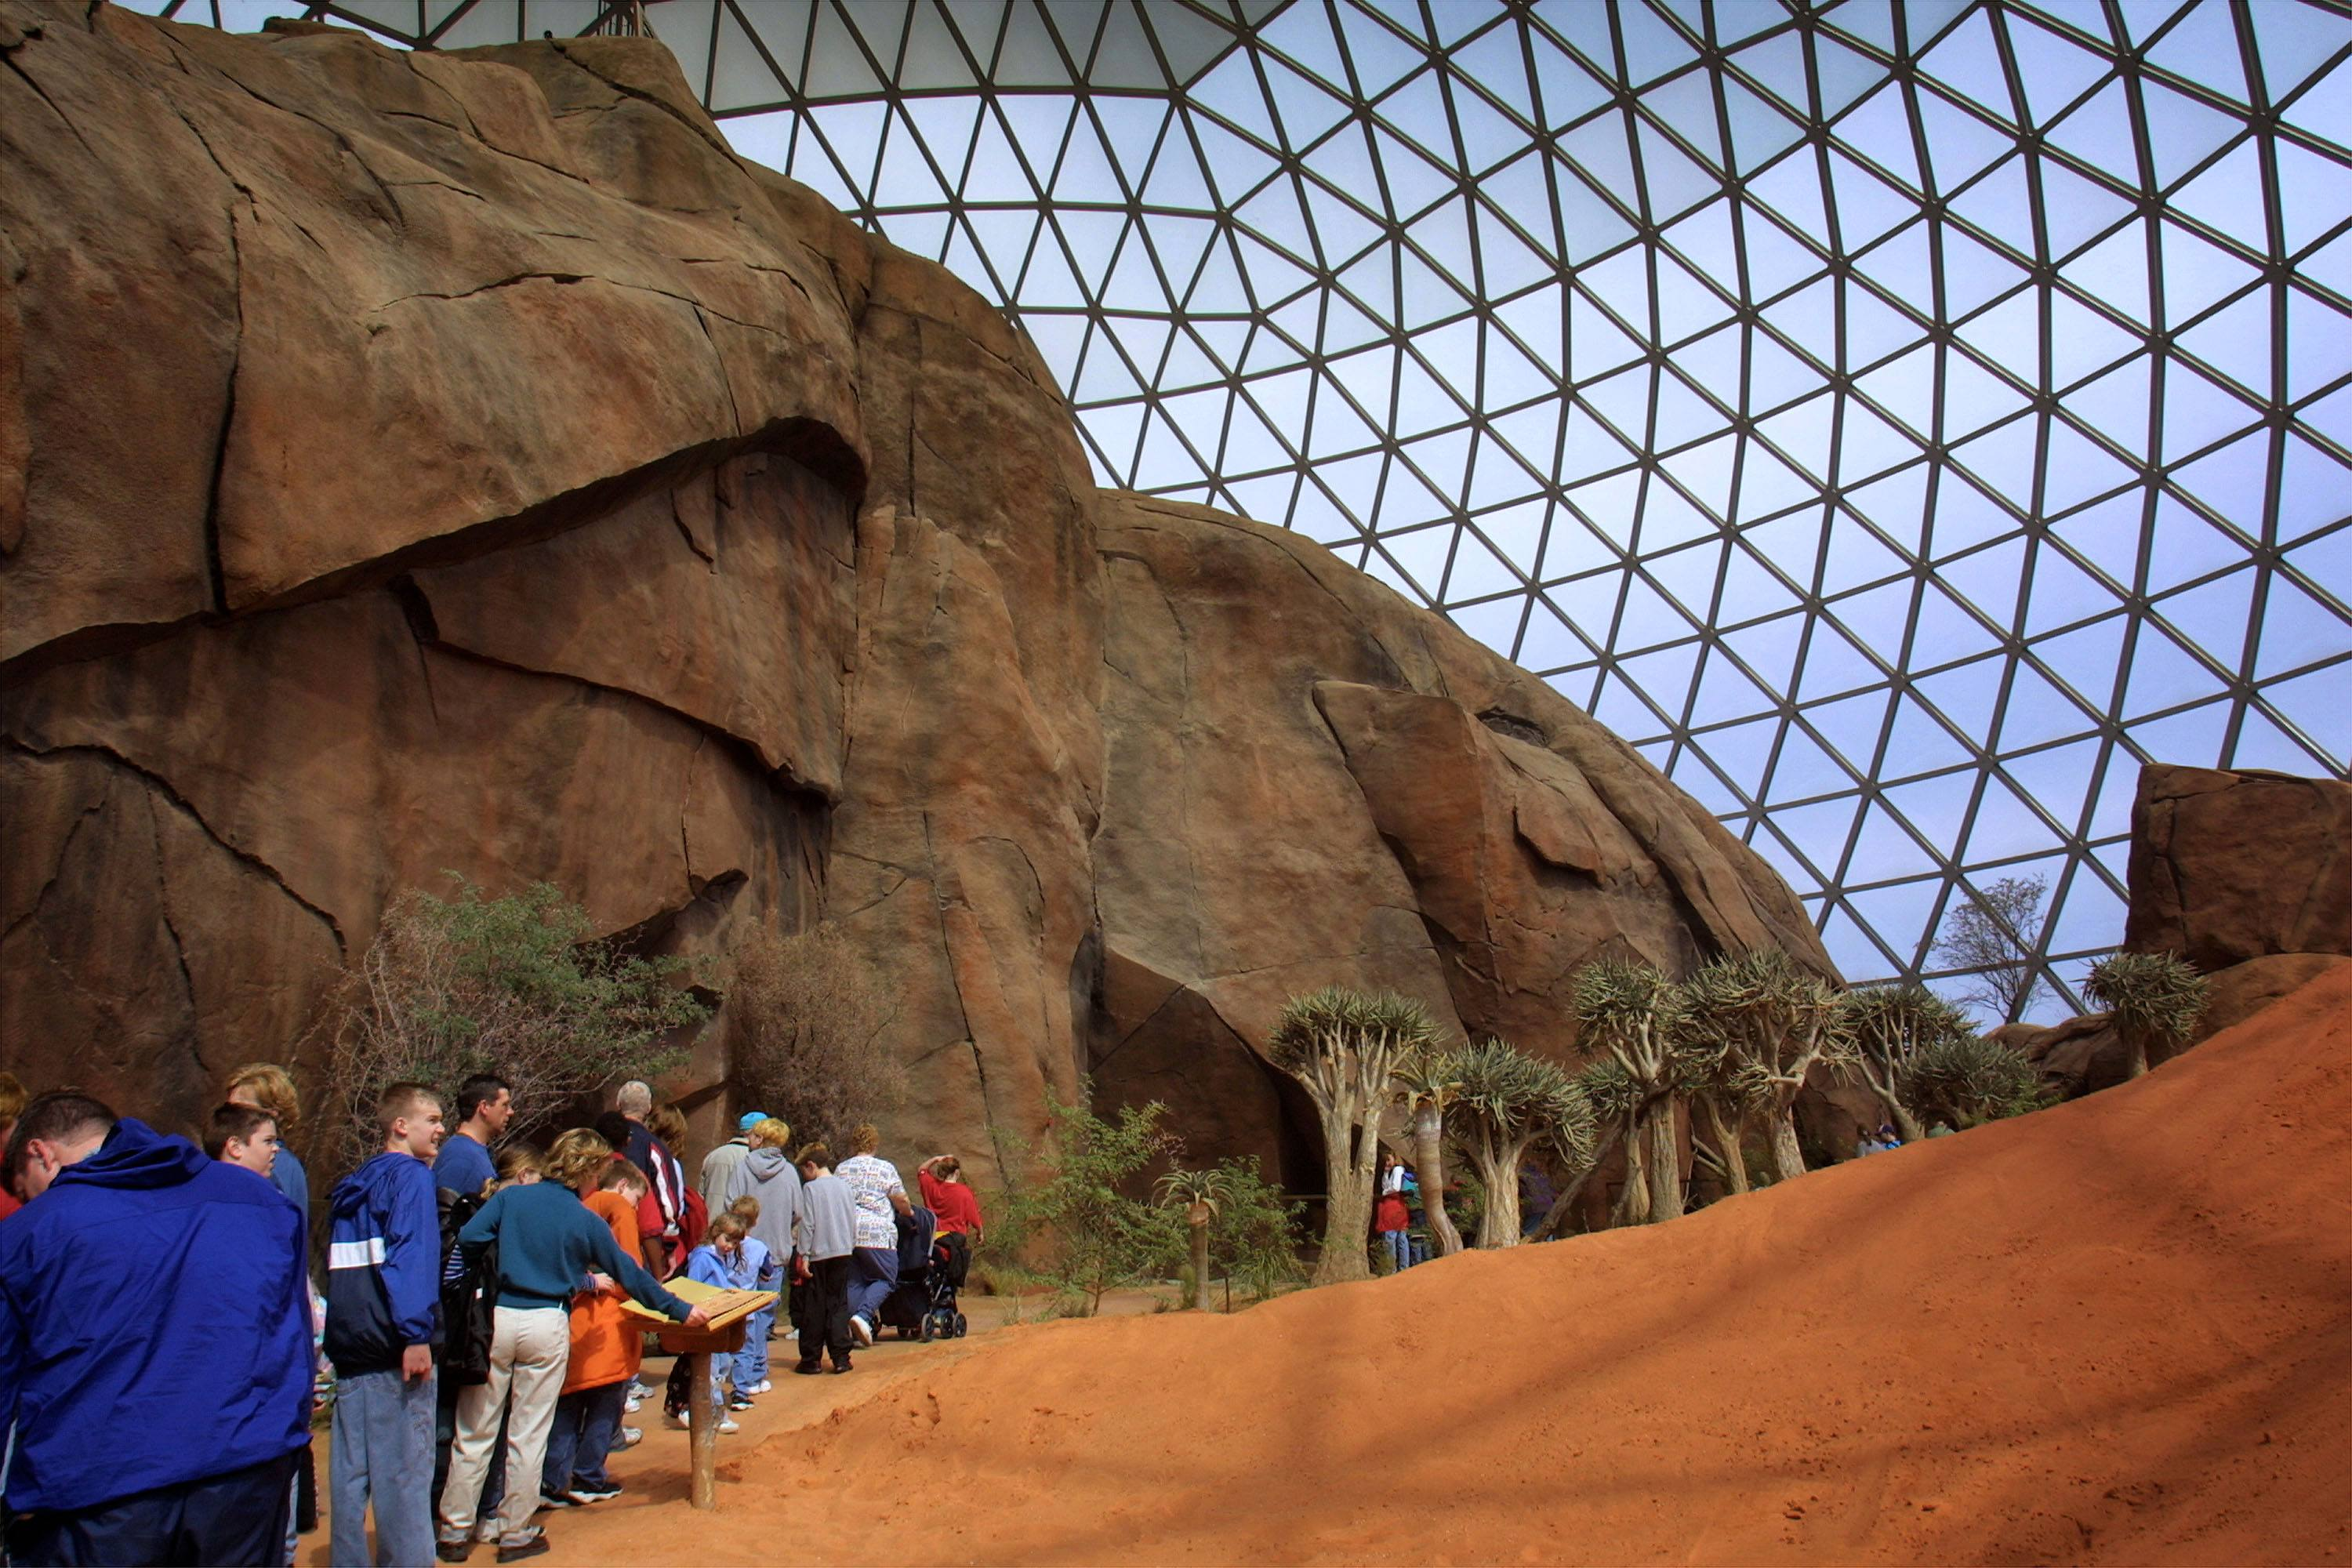 402983 04: The Desert Dome opens at the Henry Doorly Zoo March 27, 2002 in Omaha, NE. The dome houses the world's largest indoor desert containing thousands of plants and animals from three of the largest deserts.